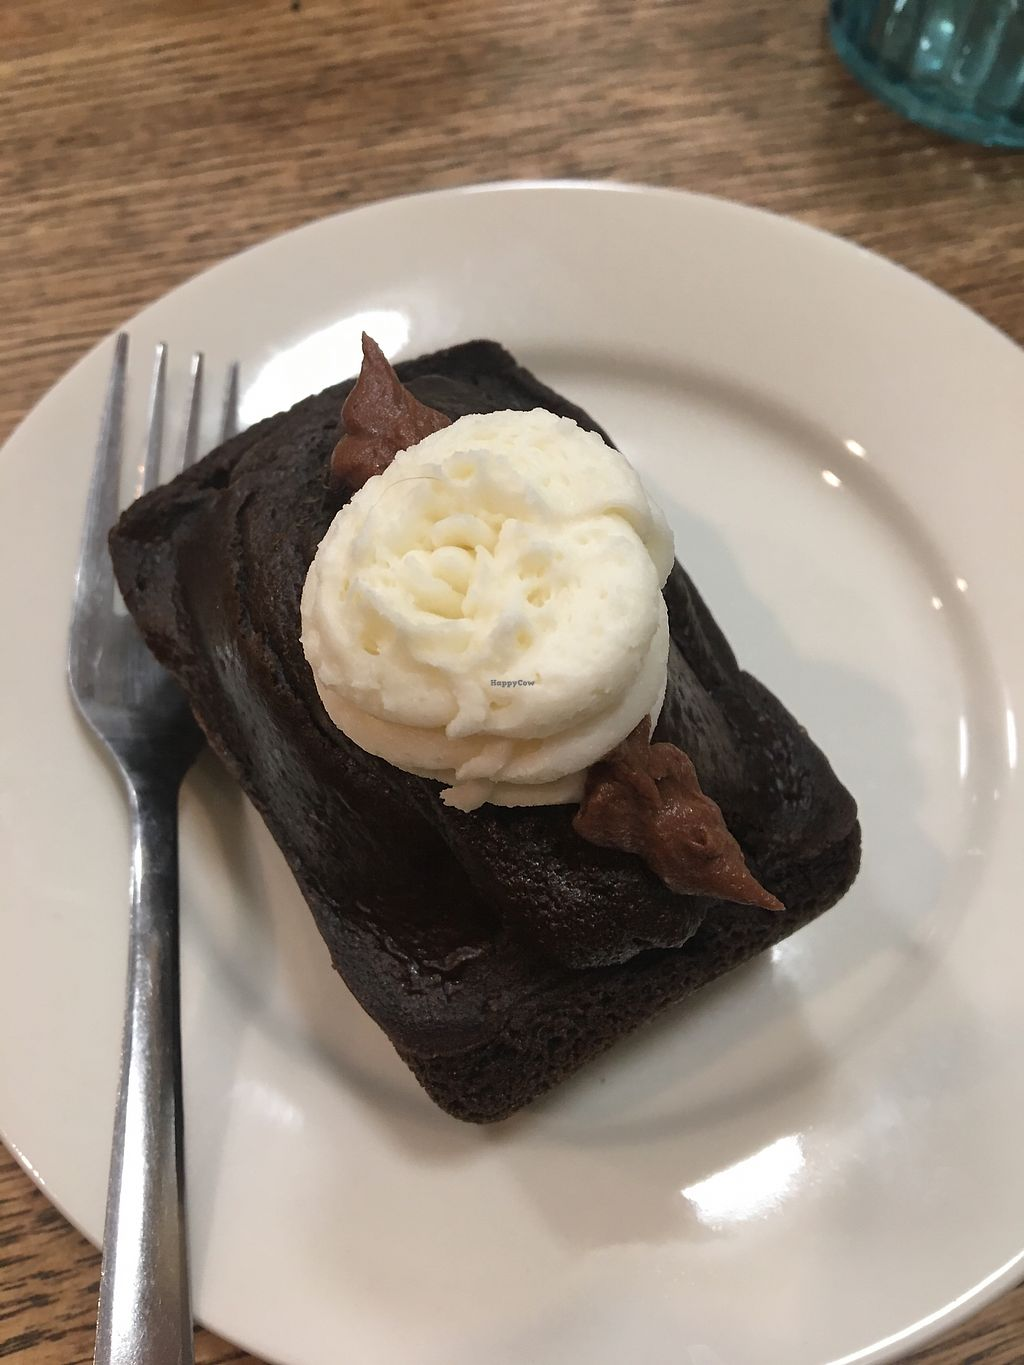 """Photo of Claire's Corner Copia  by <a href=""""/members/profile/Thepennsyltuckyvegan"""">Thepennsyltuckyvegan</a> <br/>Vegan """"Chocolate Loaf"""" <br/> January 11, 2018  - <a href='/contact/abuse/image/1781/345261'>Report</a>"""